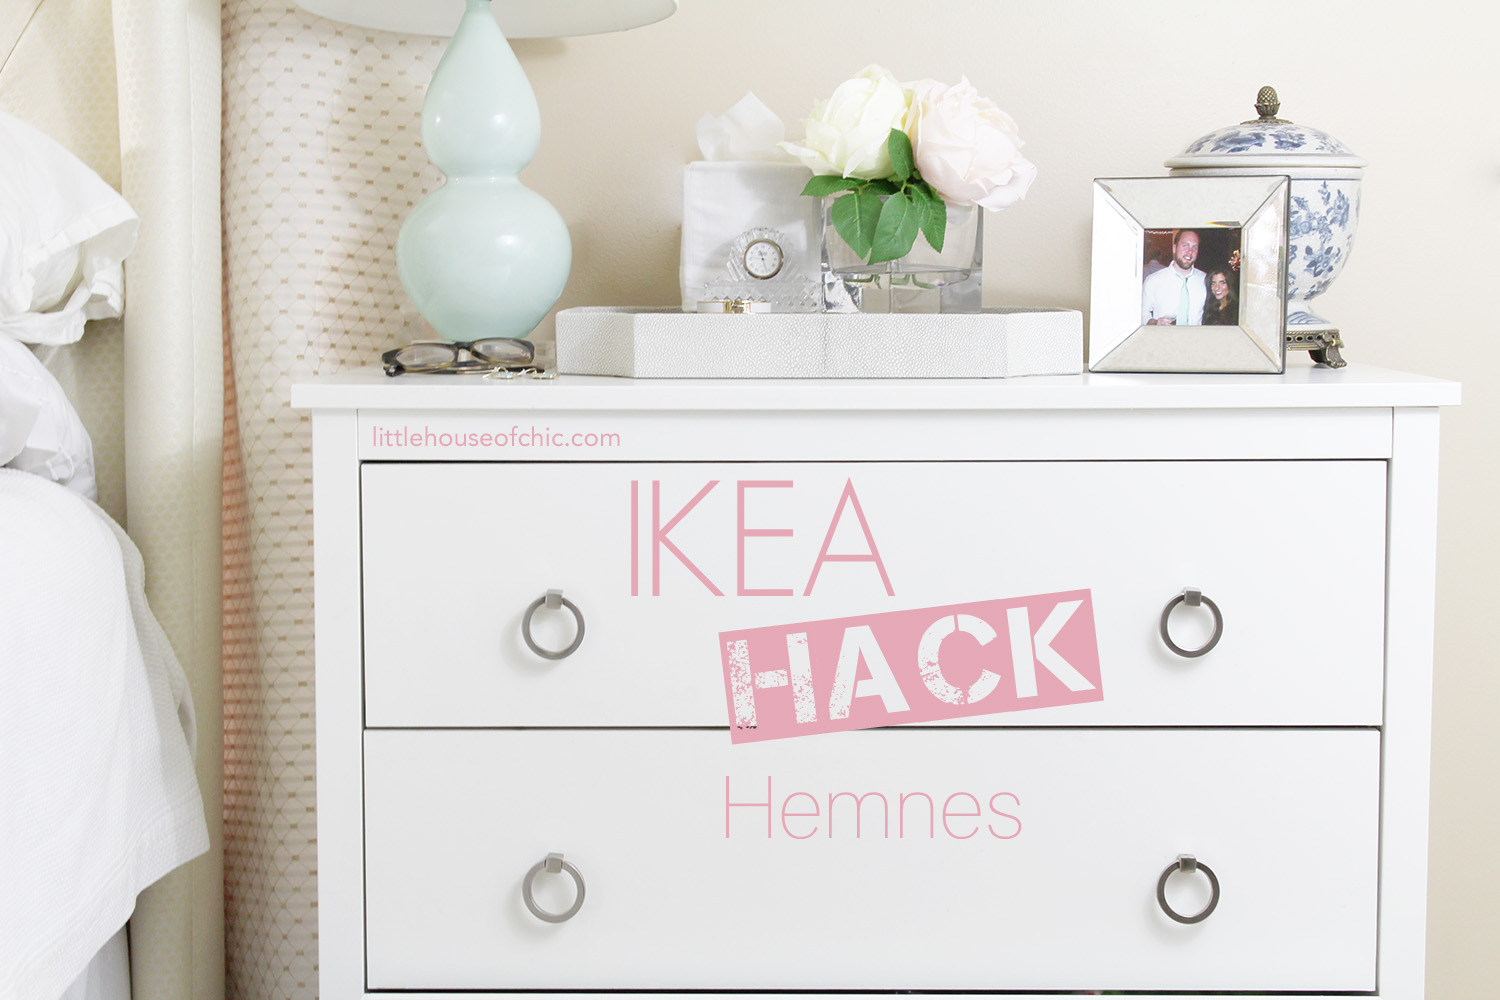 Ikea Hack Hemnes Little House Of Chic